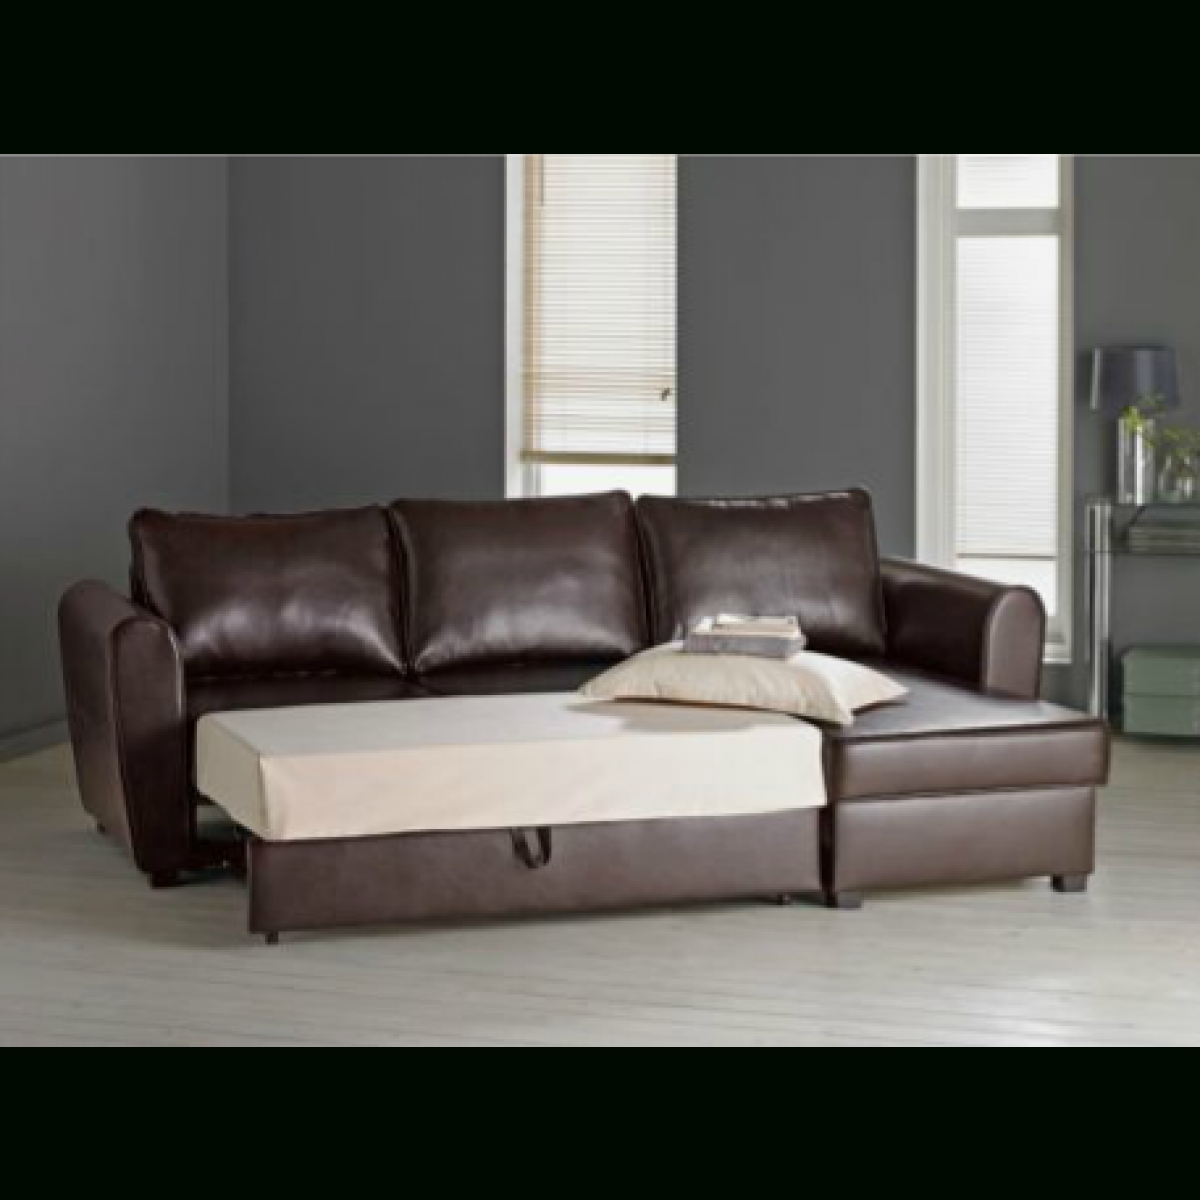 Siena Leather Effect Corner Sofa Bed With Storage Chocolate Within Leather Sofas With Storage (View 6 of 10)